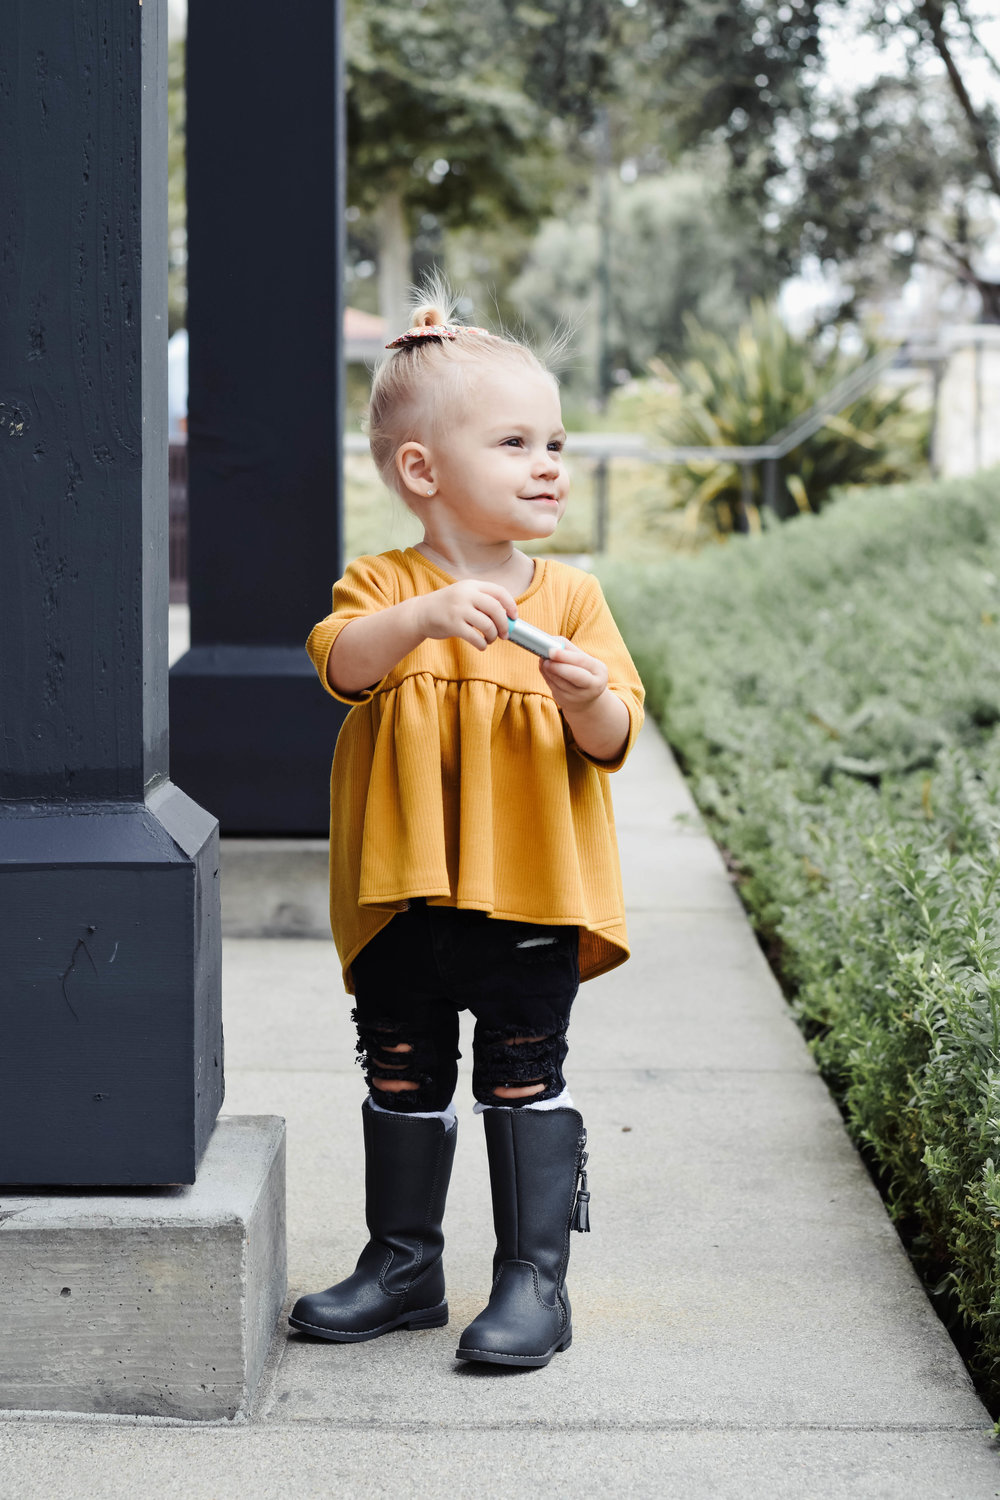 Cute Fall Kids-Baby Clothes - Kids Fur Vest - Kids Mustard Peplum Shirt - Kids Ripped Jeans